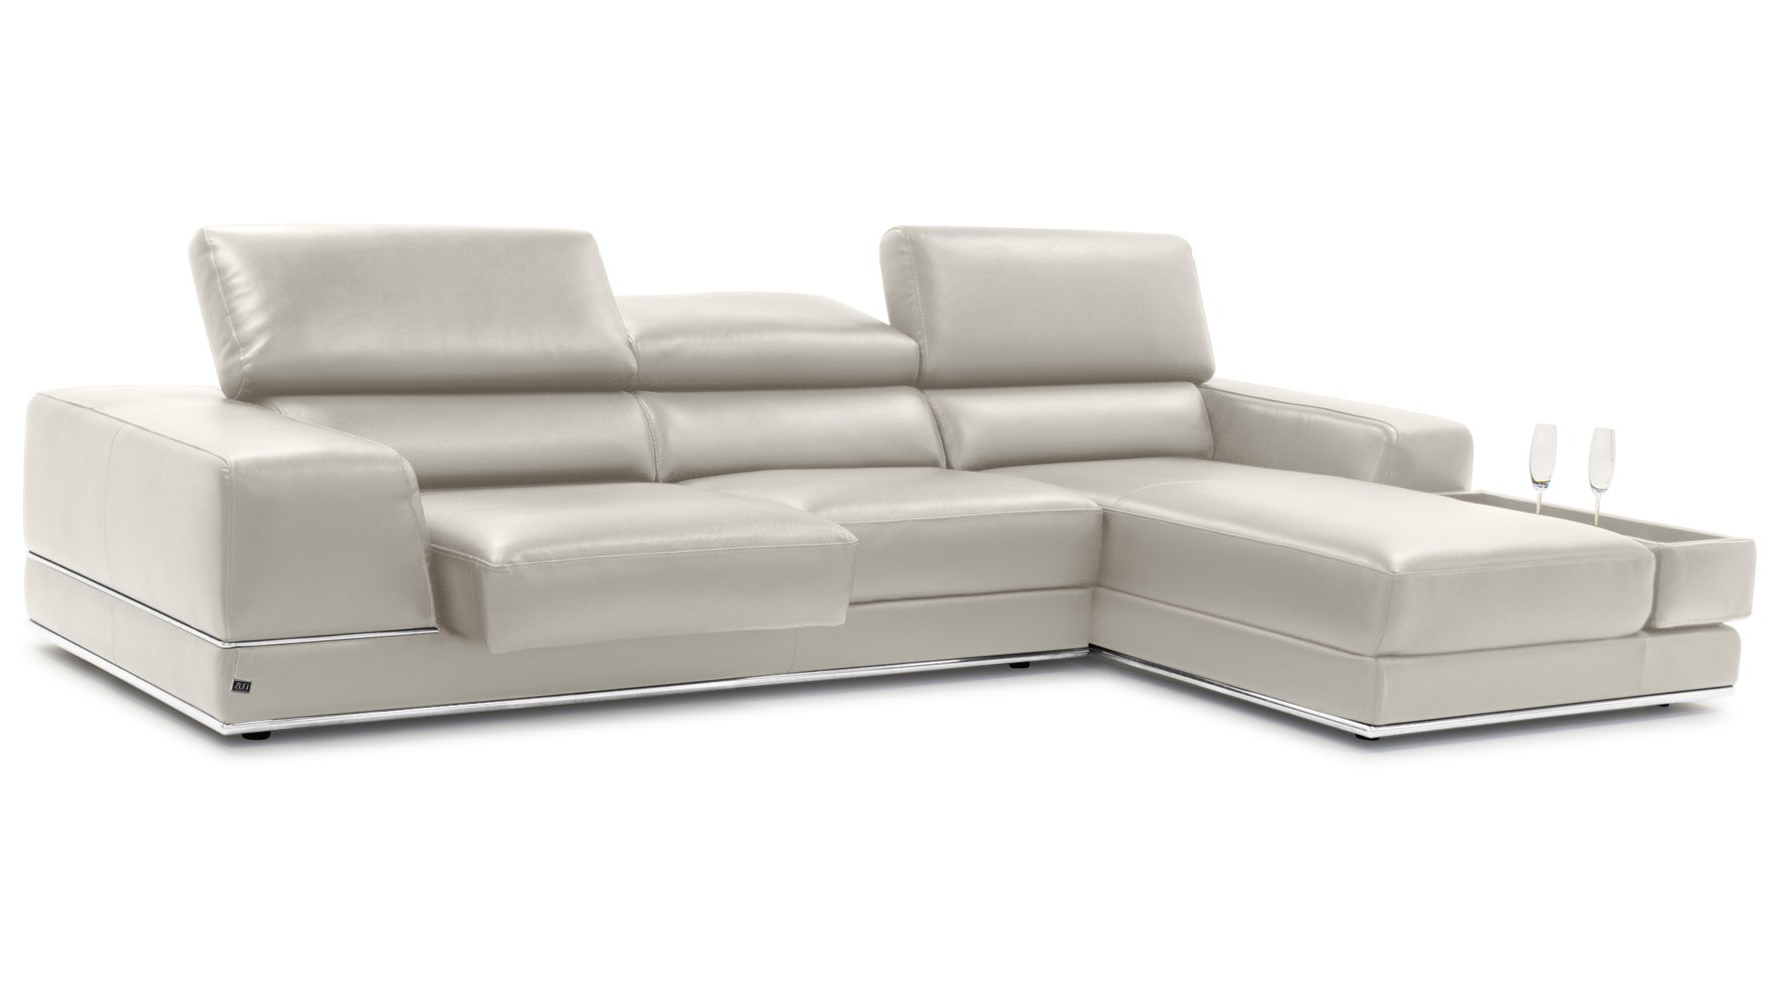 Fashionable Arresting Grey Learat Home Usa Grey Lear Sectional Amalia With Tenny Dark Grey 2 Piece Left Facing Chaise Sectionals With 2 Headrest (View 5 of 20)